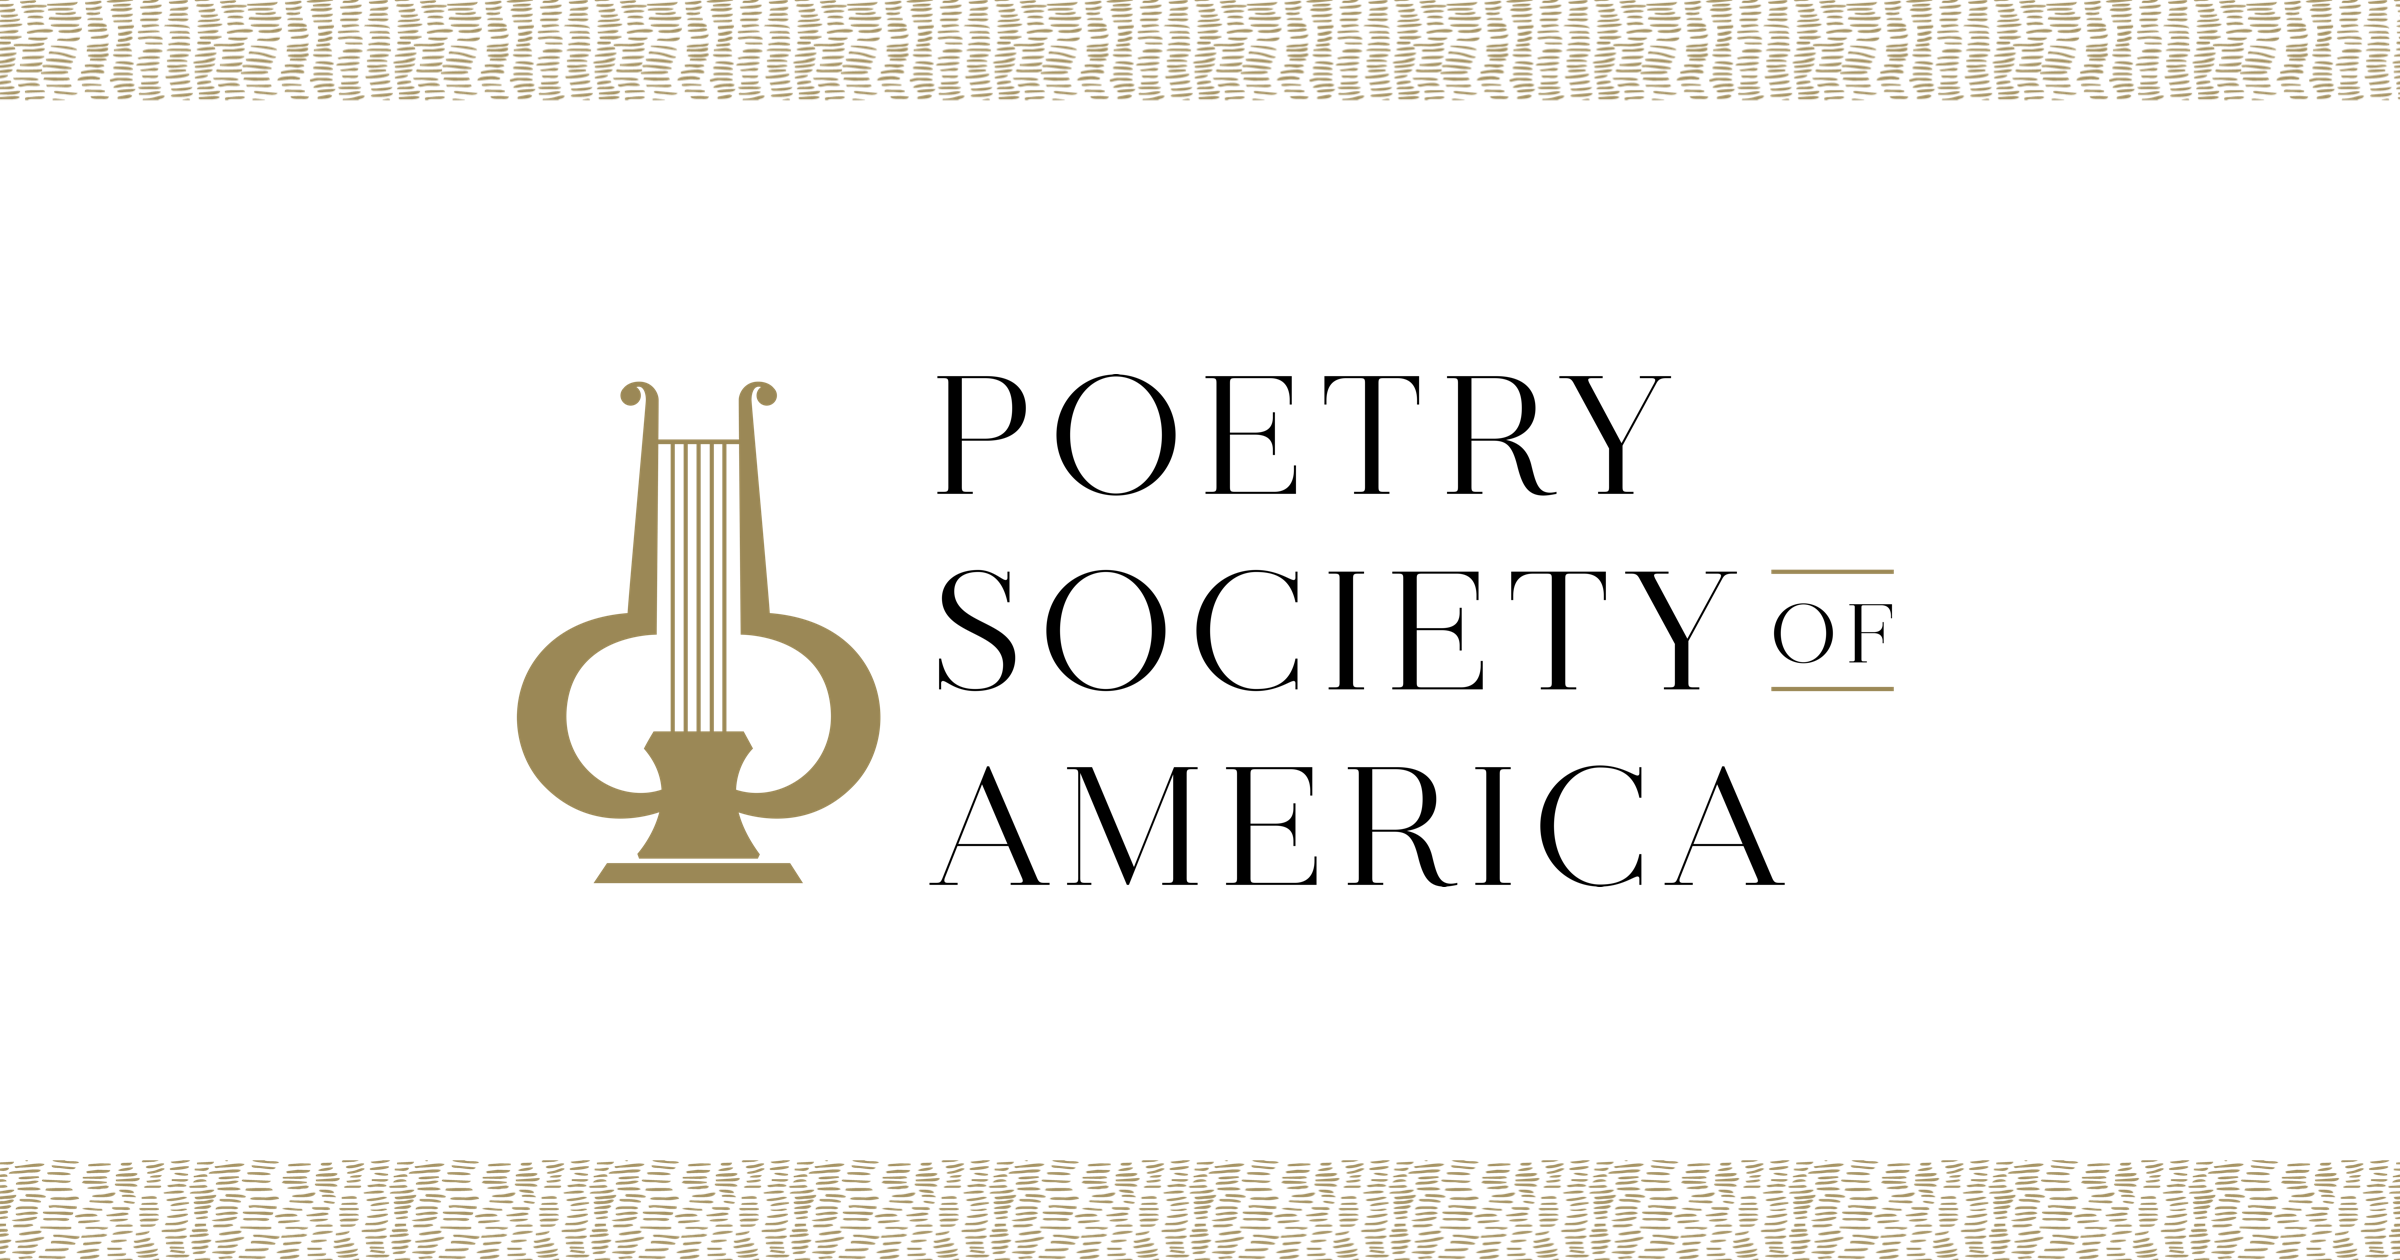 Poetry Society Of America